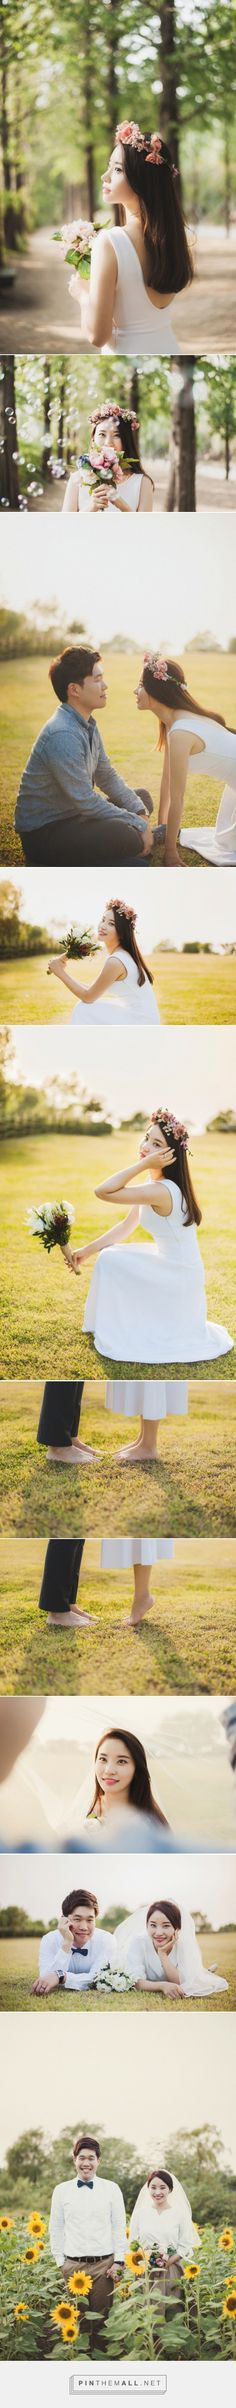 Nature Foto Wedding, Wedding Couples, Wedding Pictures, Pre Wedding Shoot Ideas, Pre Wedding Photoshoot, Photography Poses, Wedding Photography, Photo Sequence, Friendship Photography